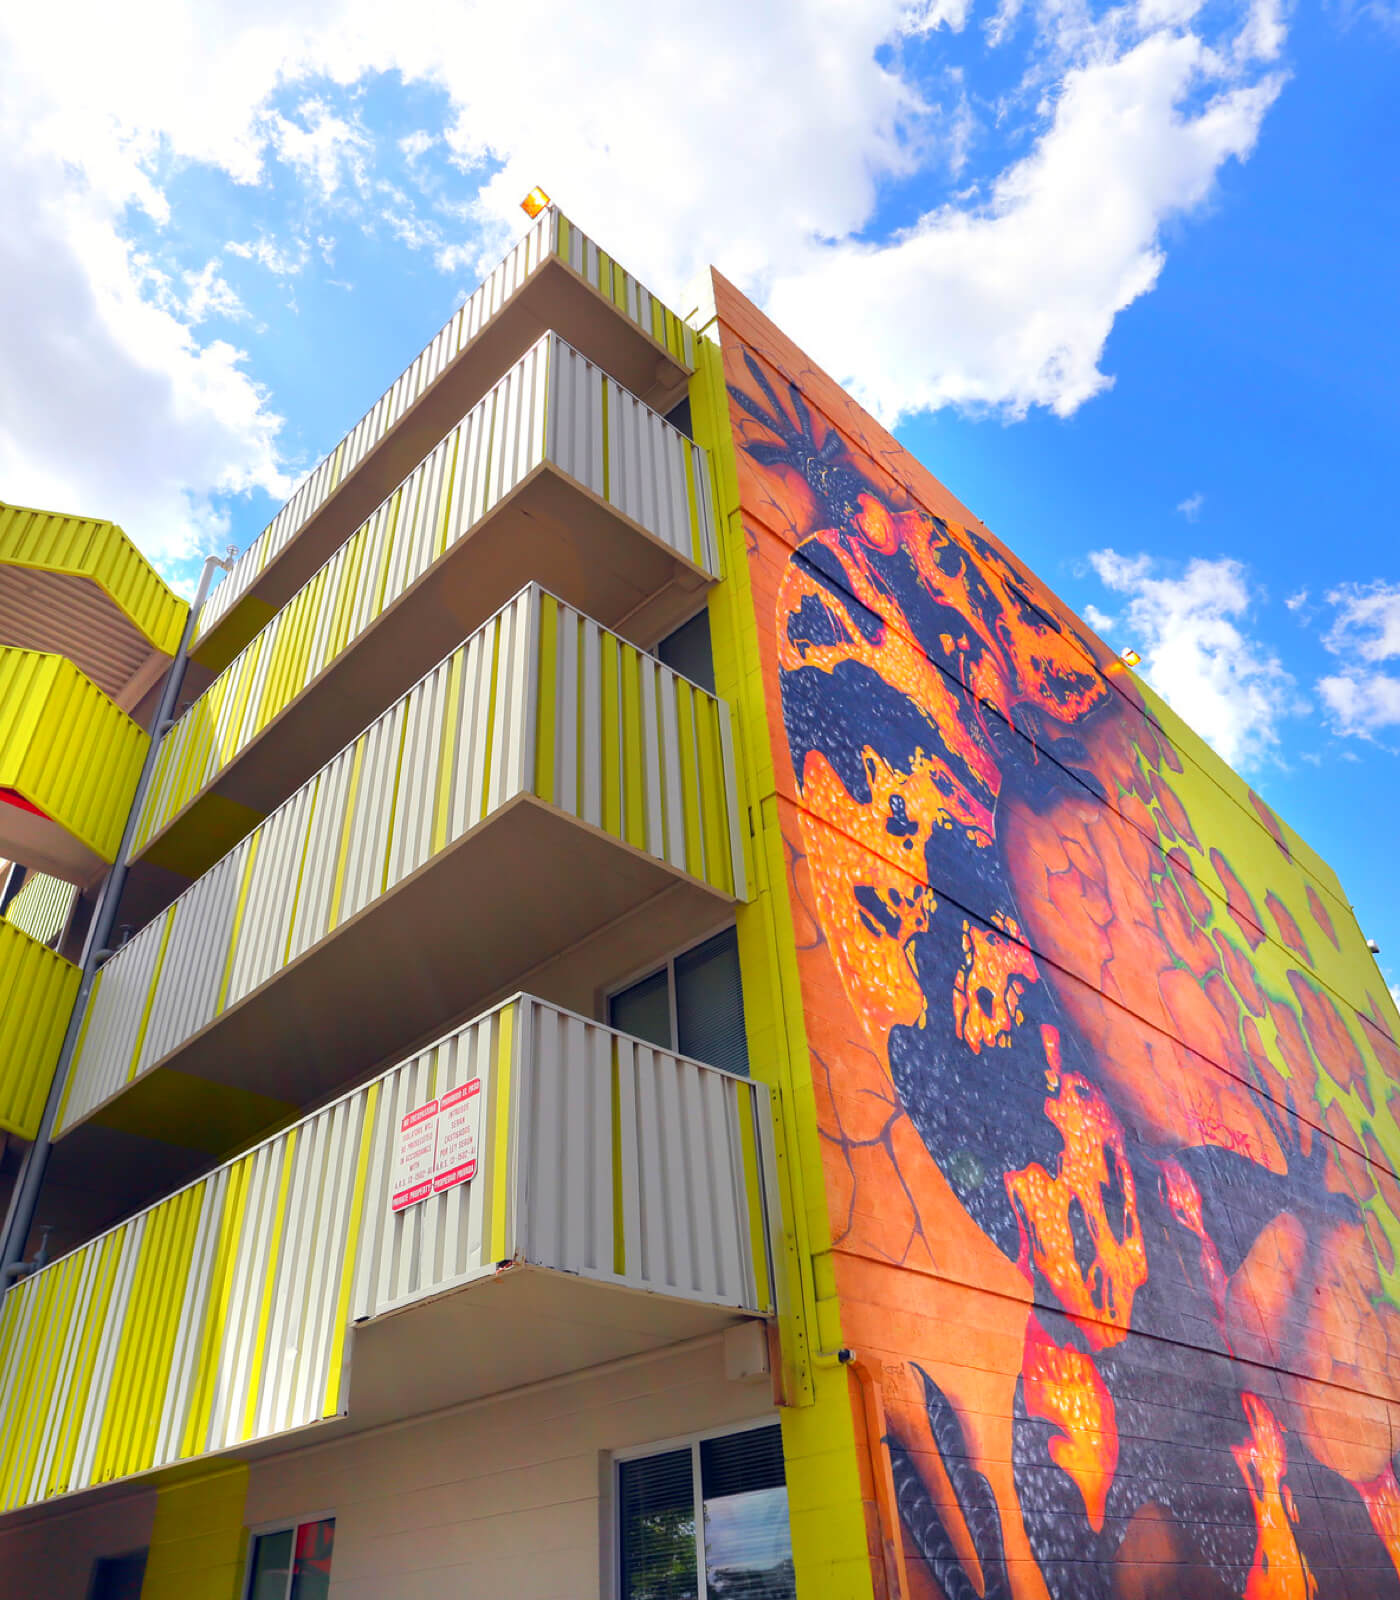 The-Mark-Student-Housing-Property-Tempe-AZ-ASU-FI